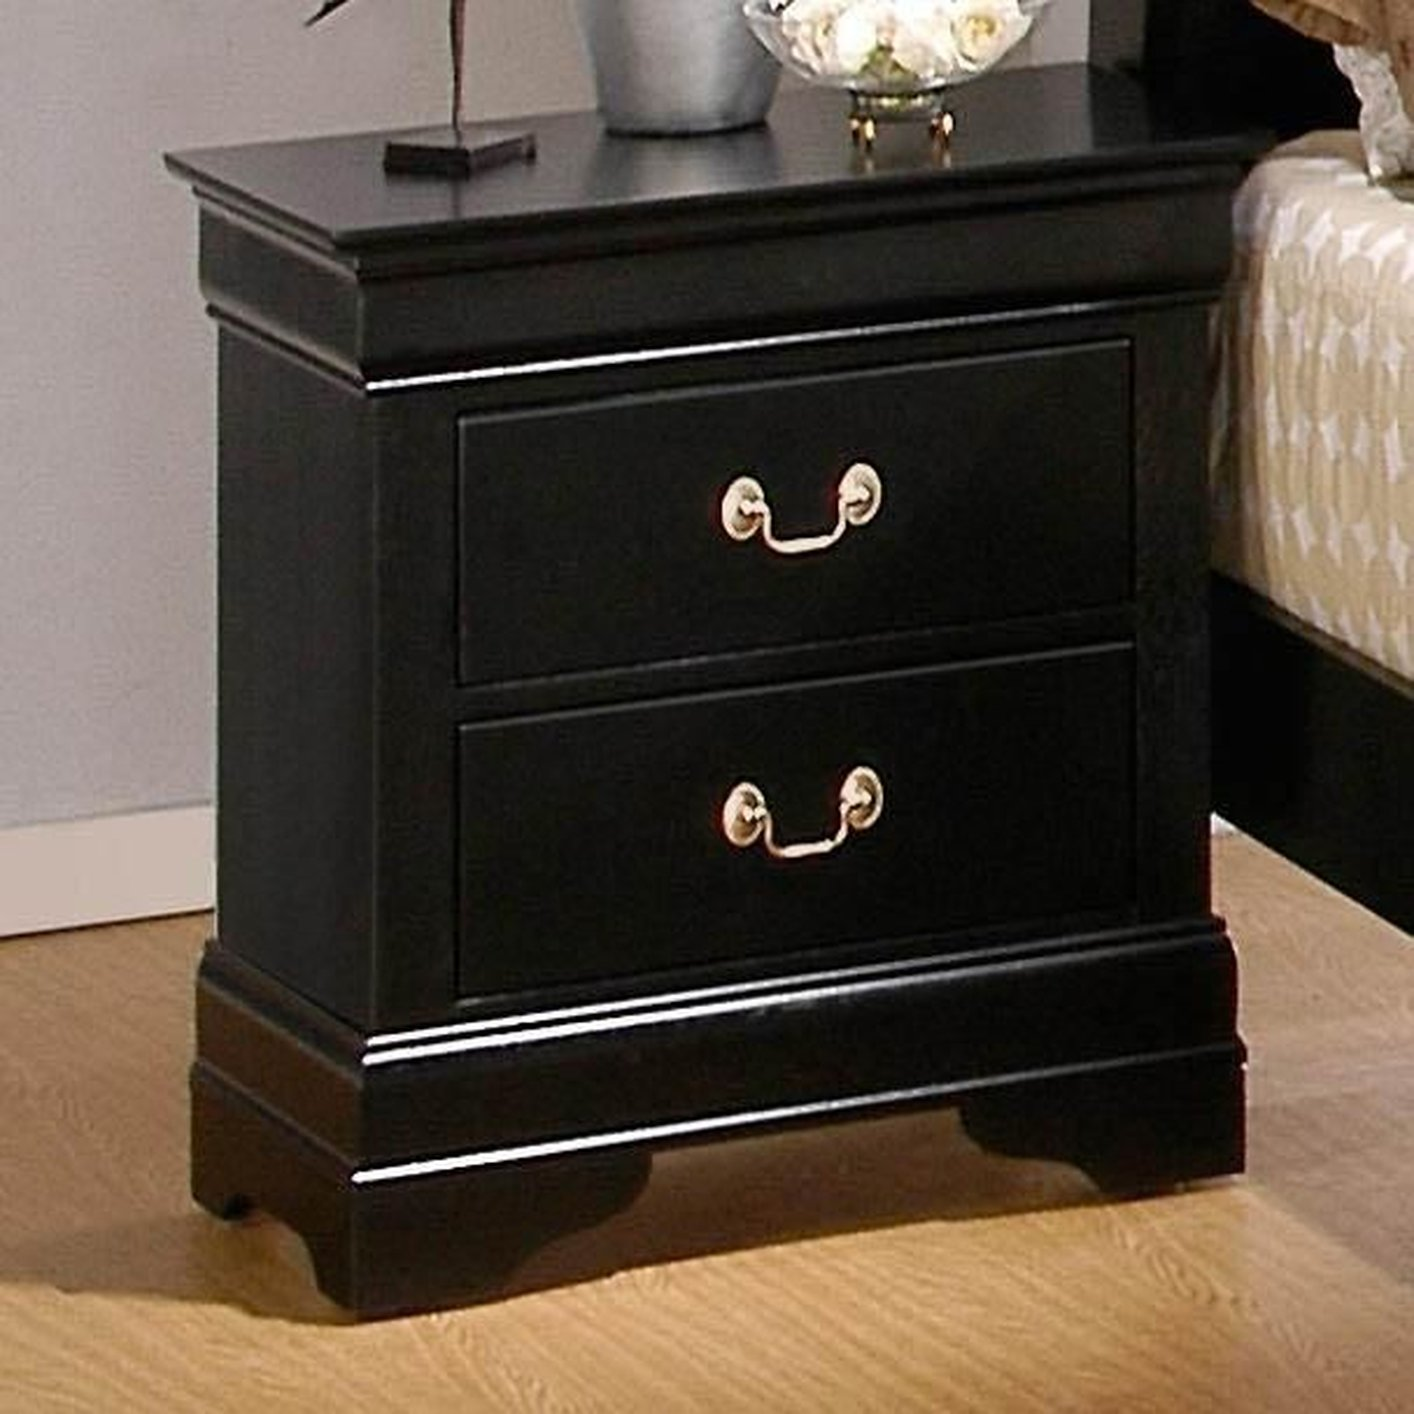 Louis philippe deep black wood nightstand steal a sofa for Black wood nightstand